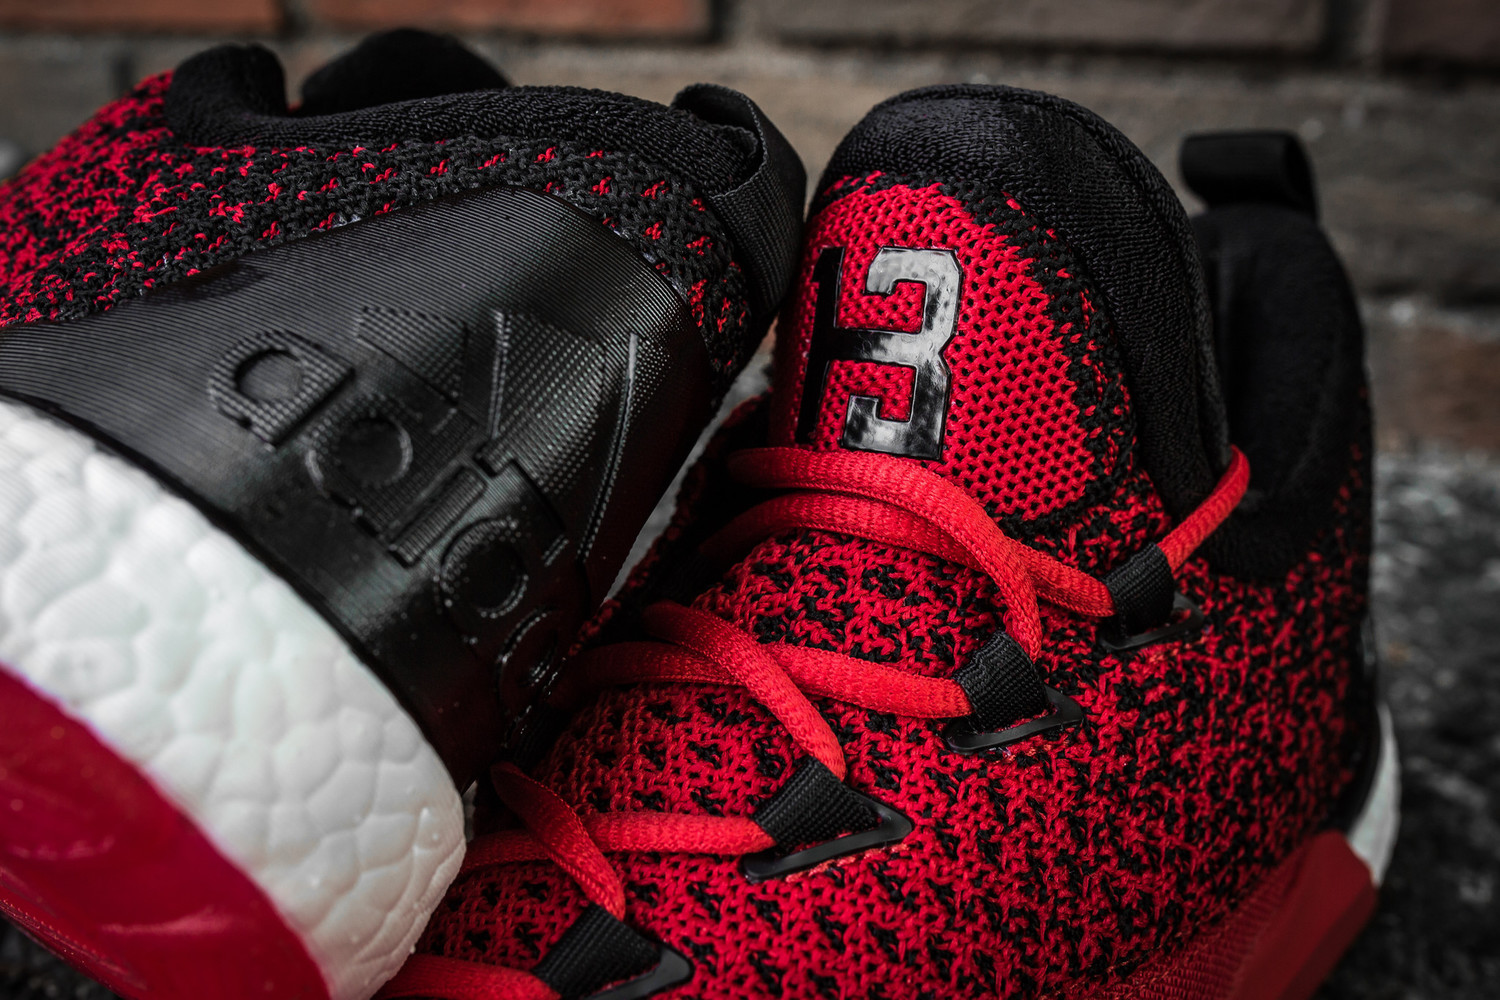 Adidas crazylight boost low 2016 bred black red mens basketball shoes - 5_adidas_crazylight_boost_2 5_low_harden_red Black 9_2048x2048 Jpg